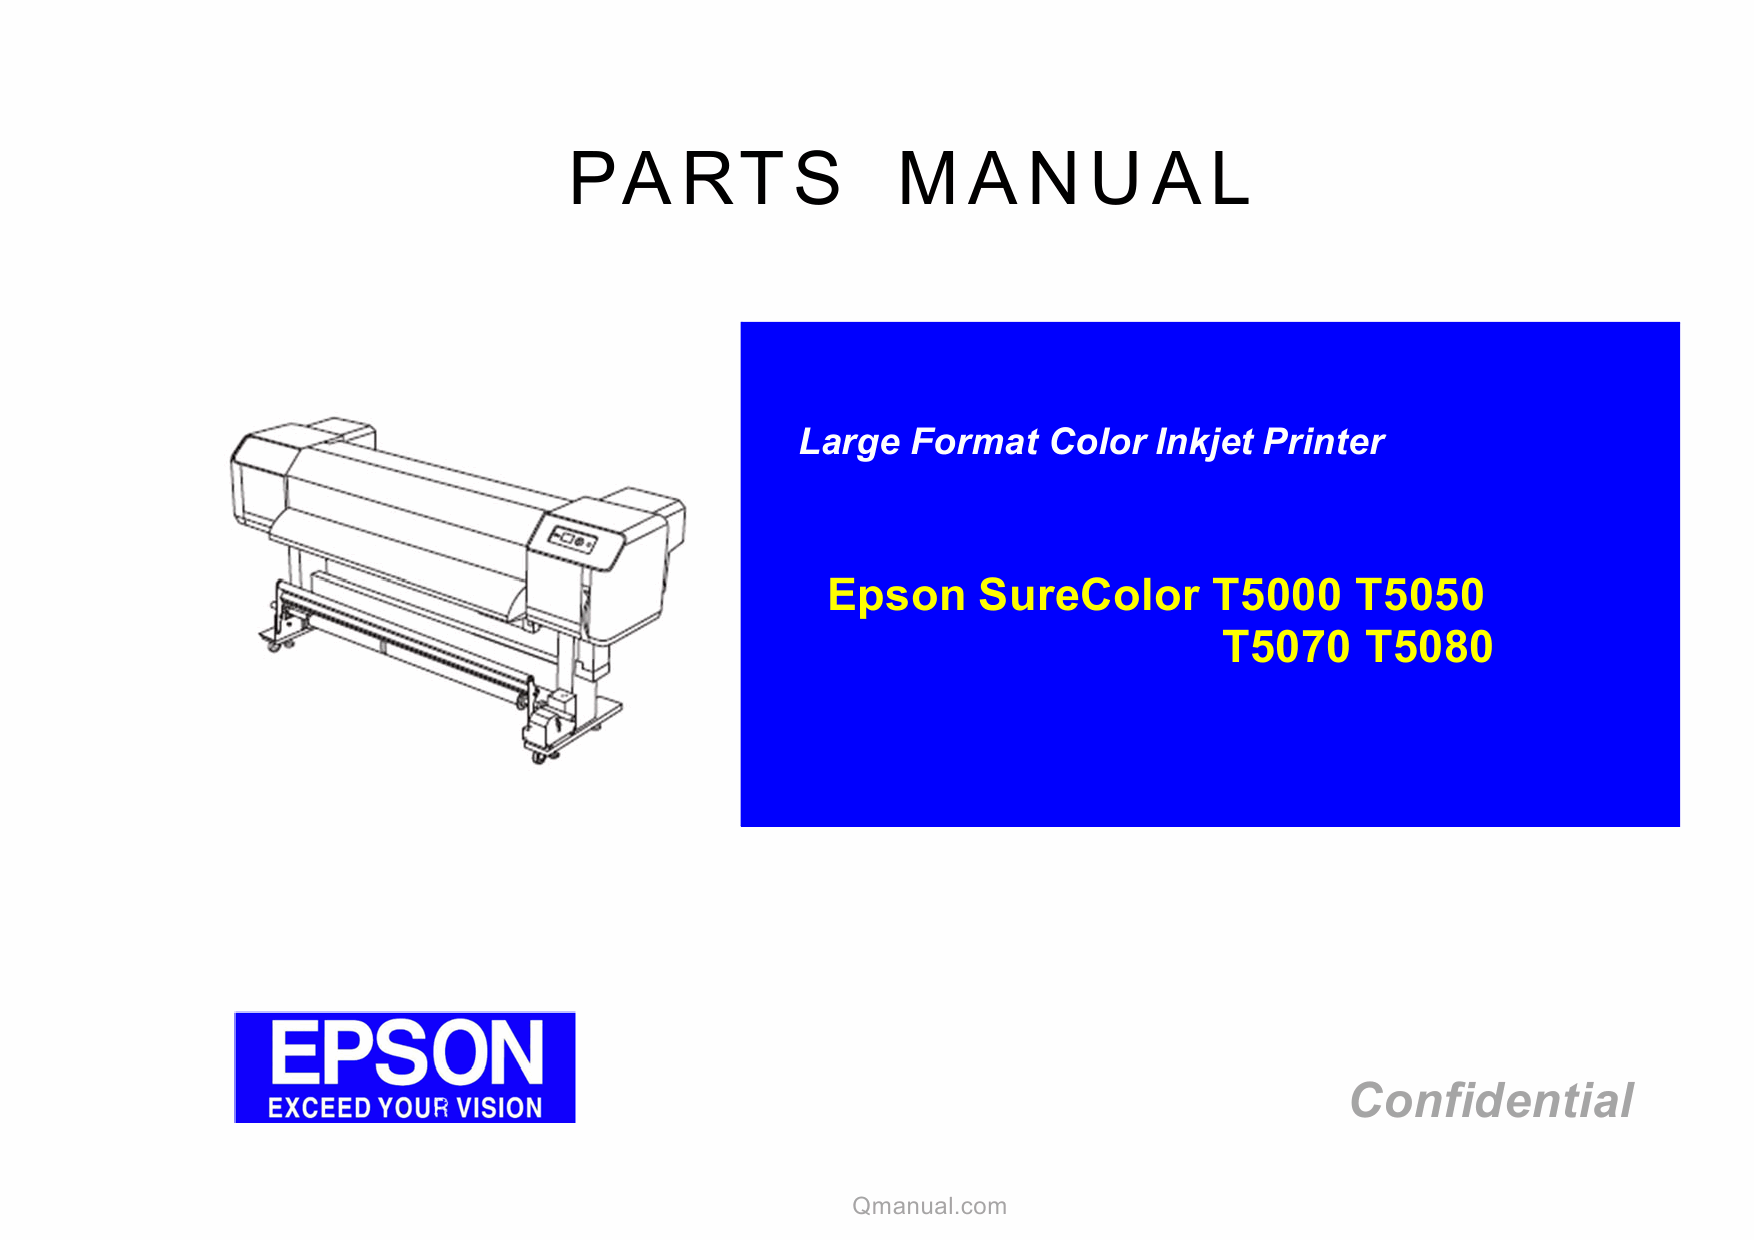 EPSON SureColor T5000 T5050 T5070 T5080 Parts Manual-1